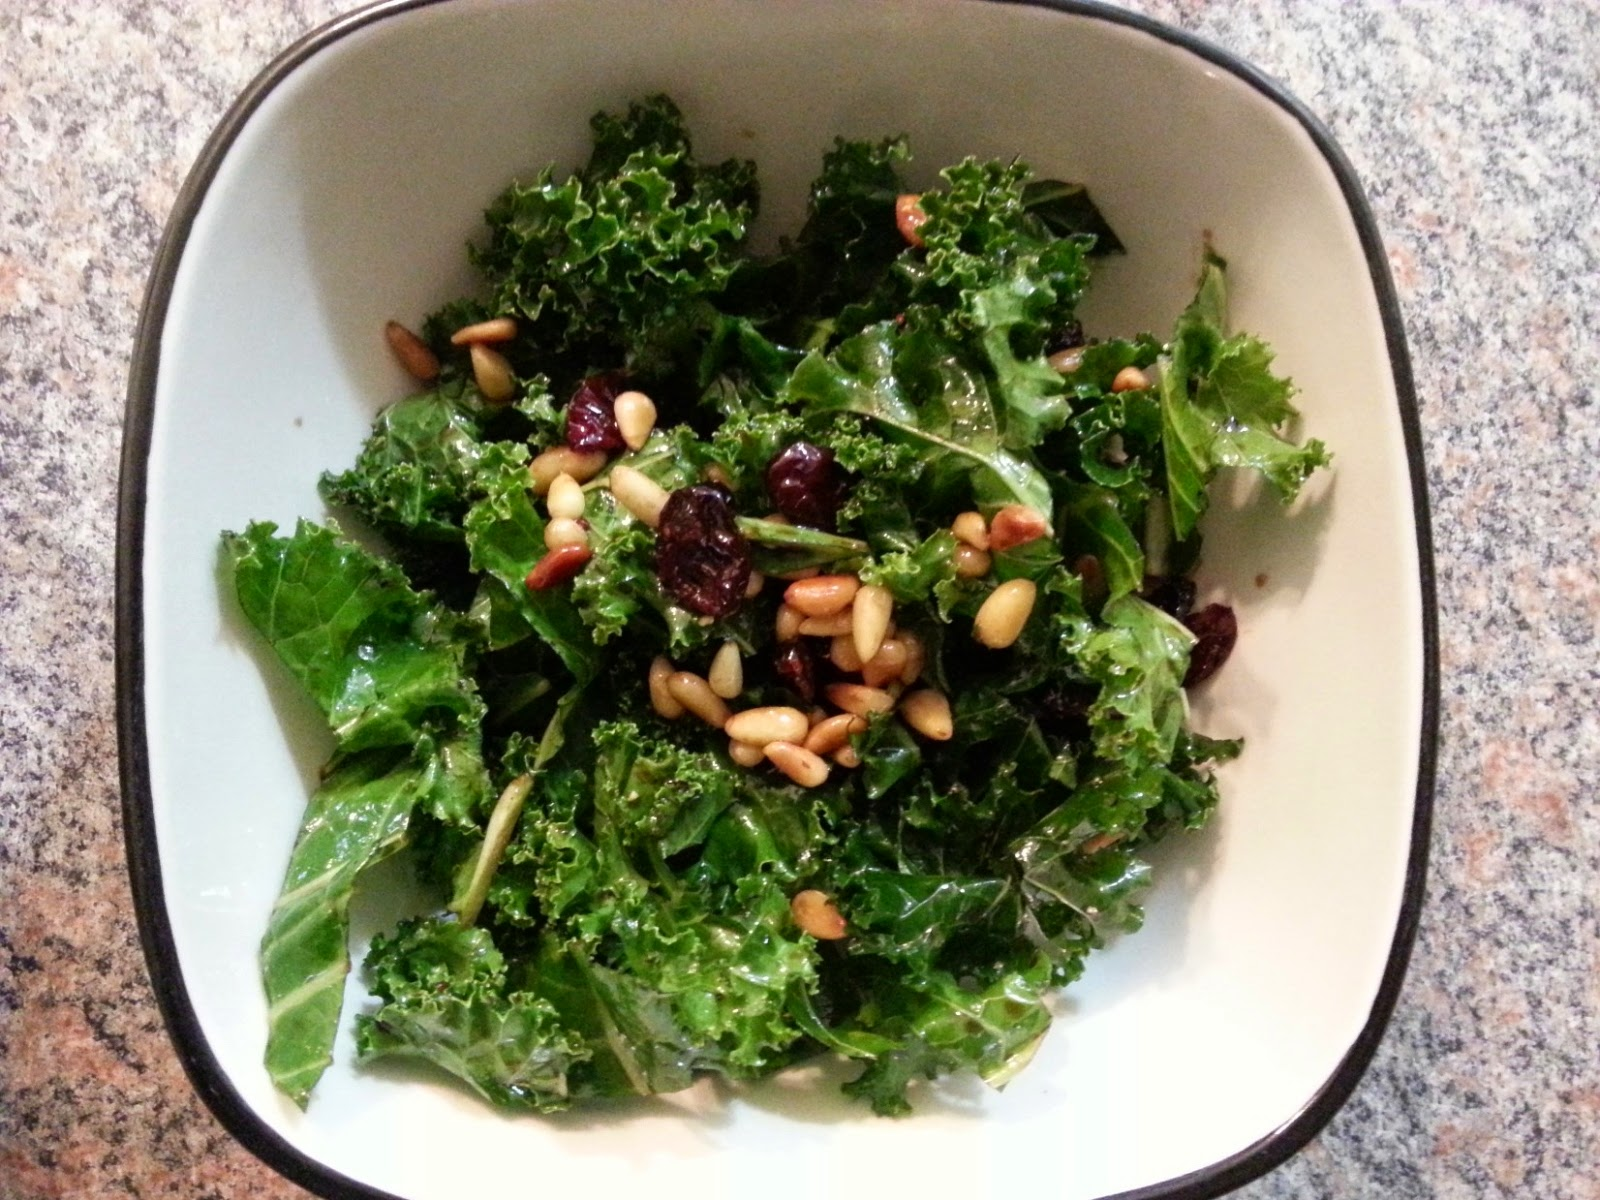 ... .com/recipes/raw_kale_salad_with_balsamic_pine_nuts_and_parmesan